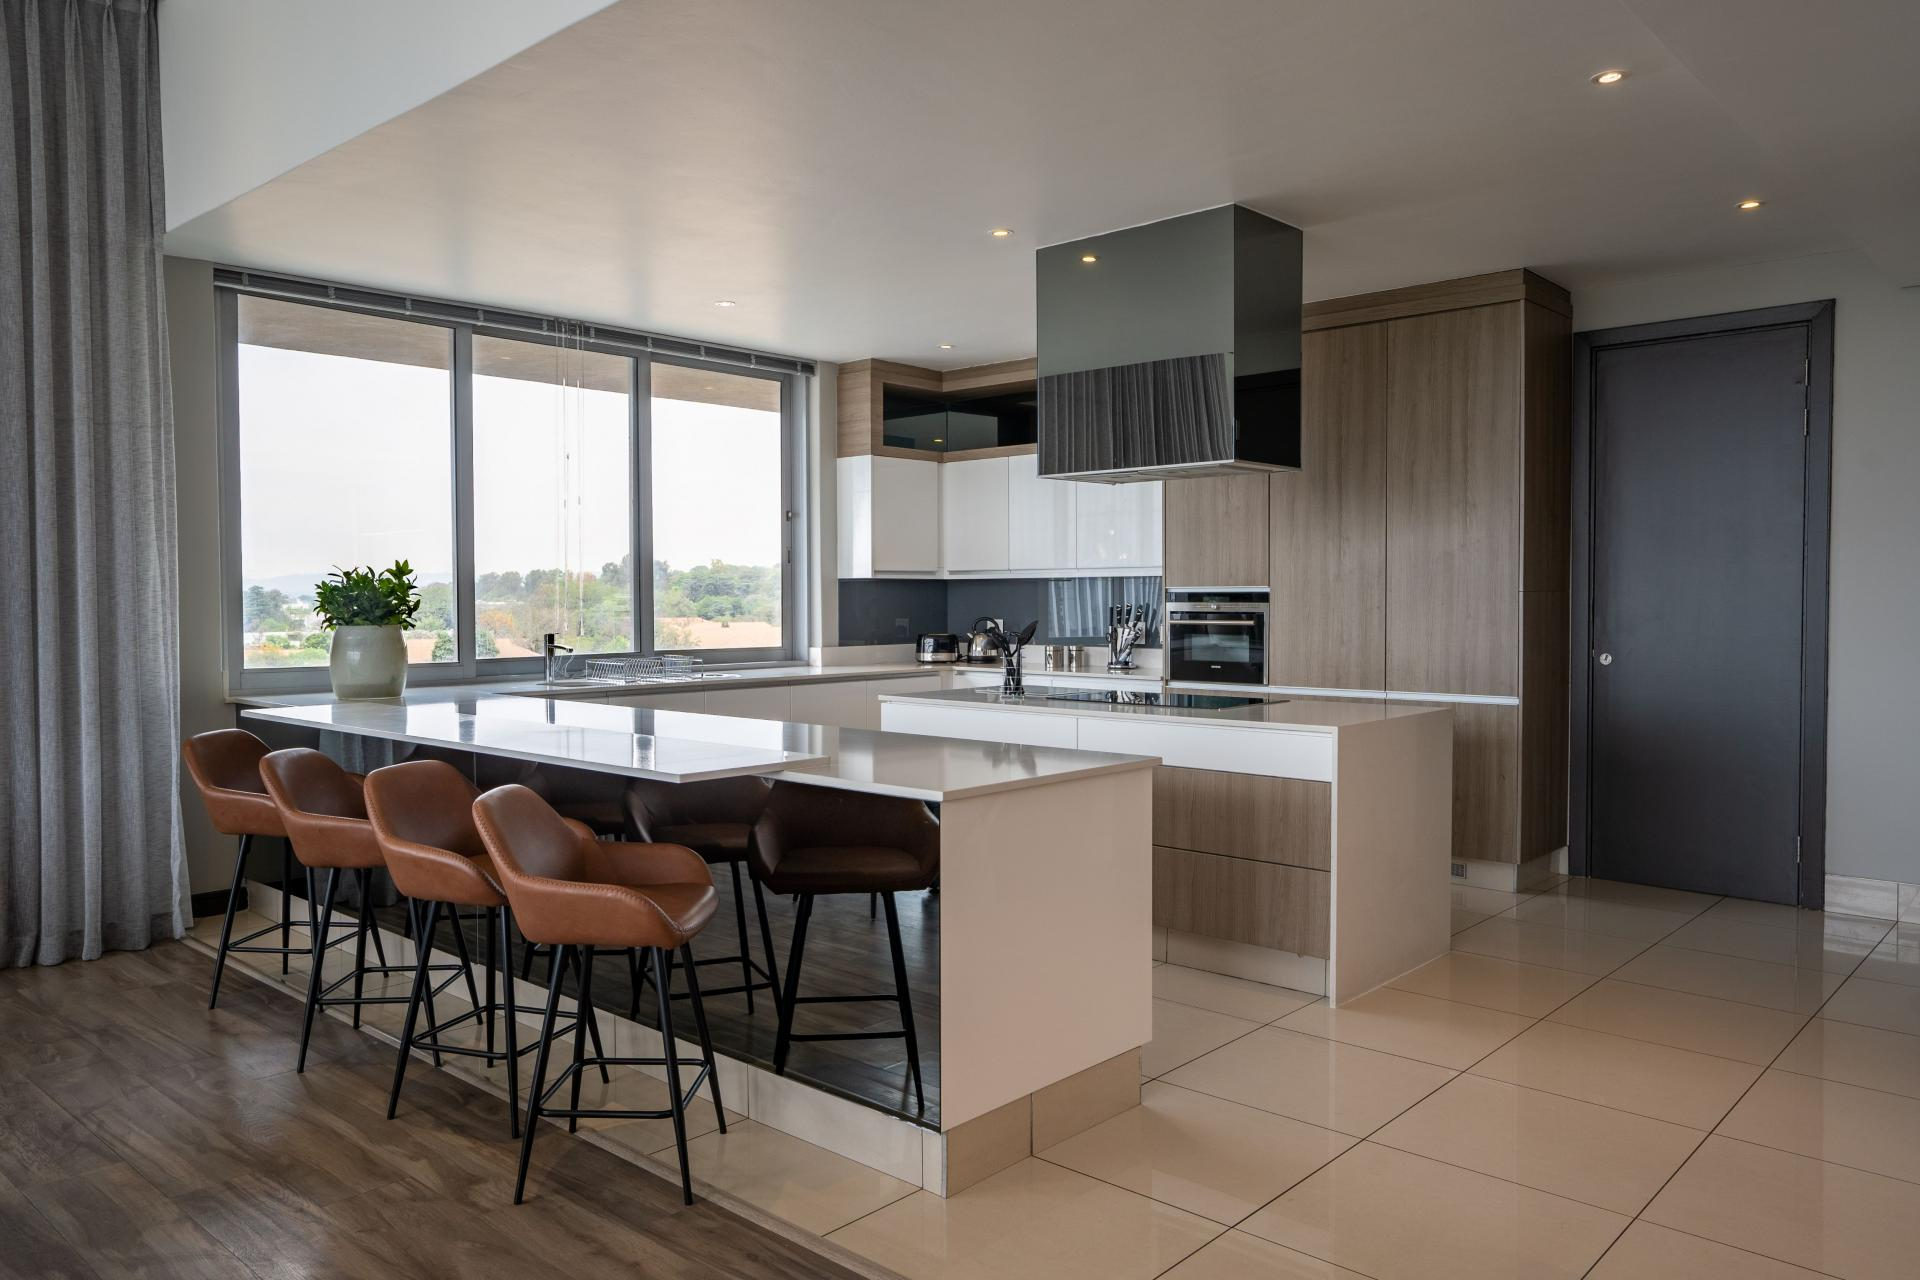 Penthouse kitchen at The Capital Empire, Sandton, Johannesburg - Citybase Apartments